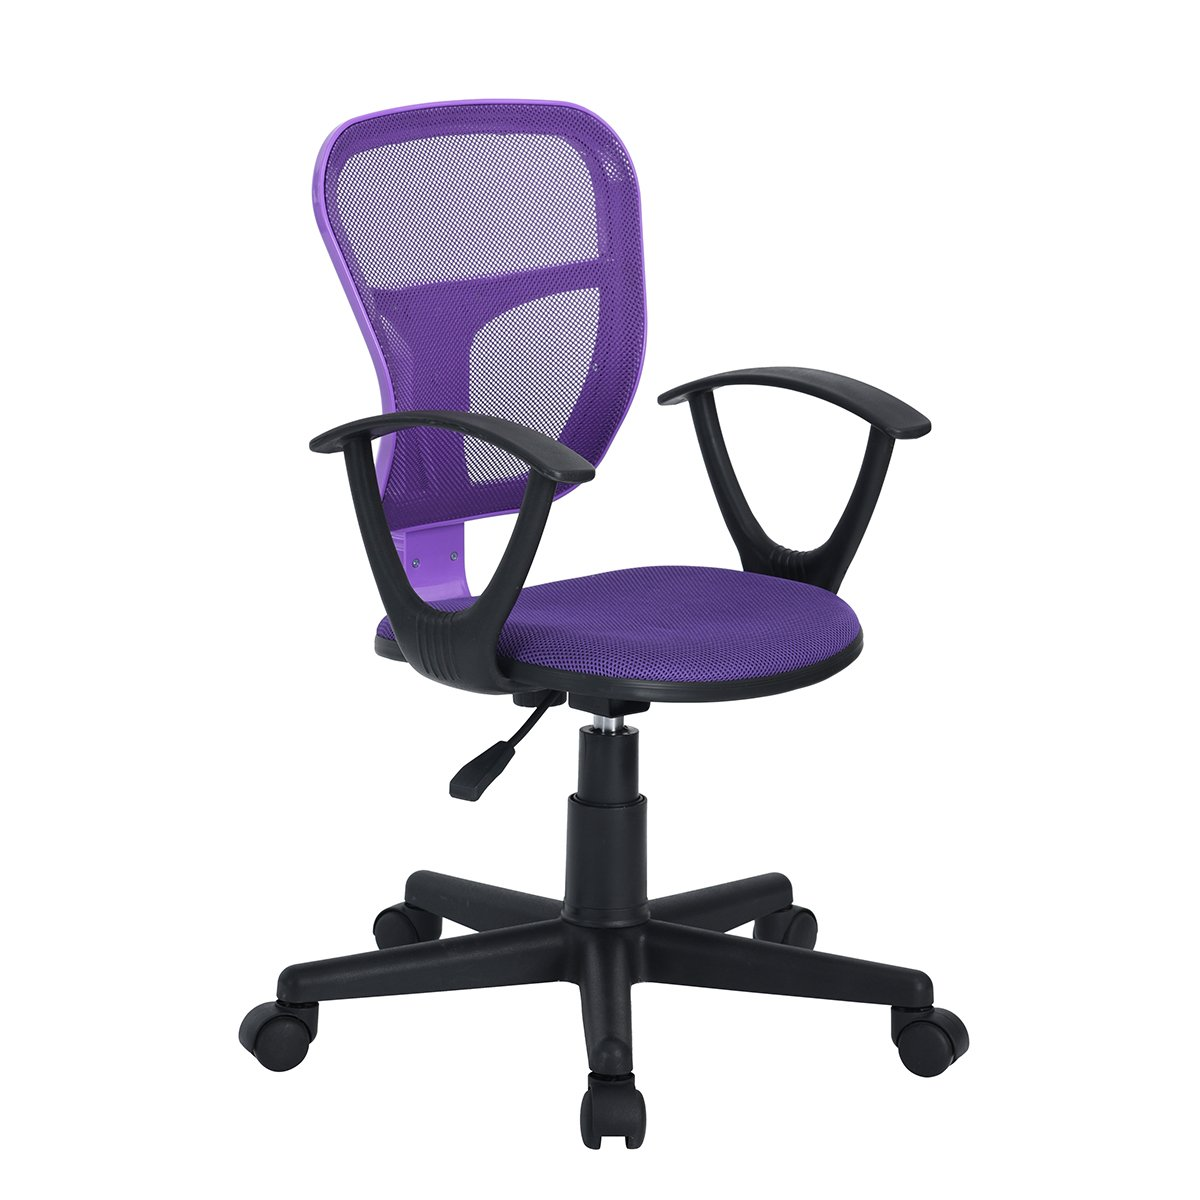 HOMY CASA Fabric Office Chair Mid Back Mesh Padded Swivel Desk Chair for Home Office (Fabric)